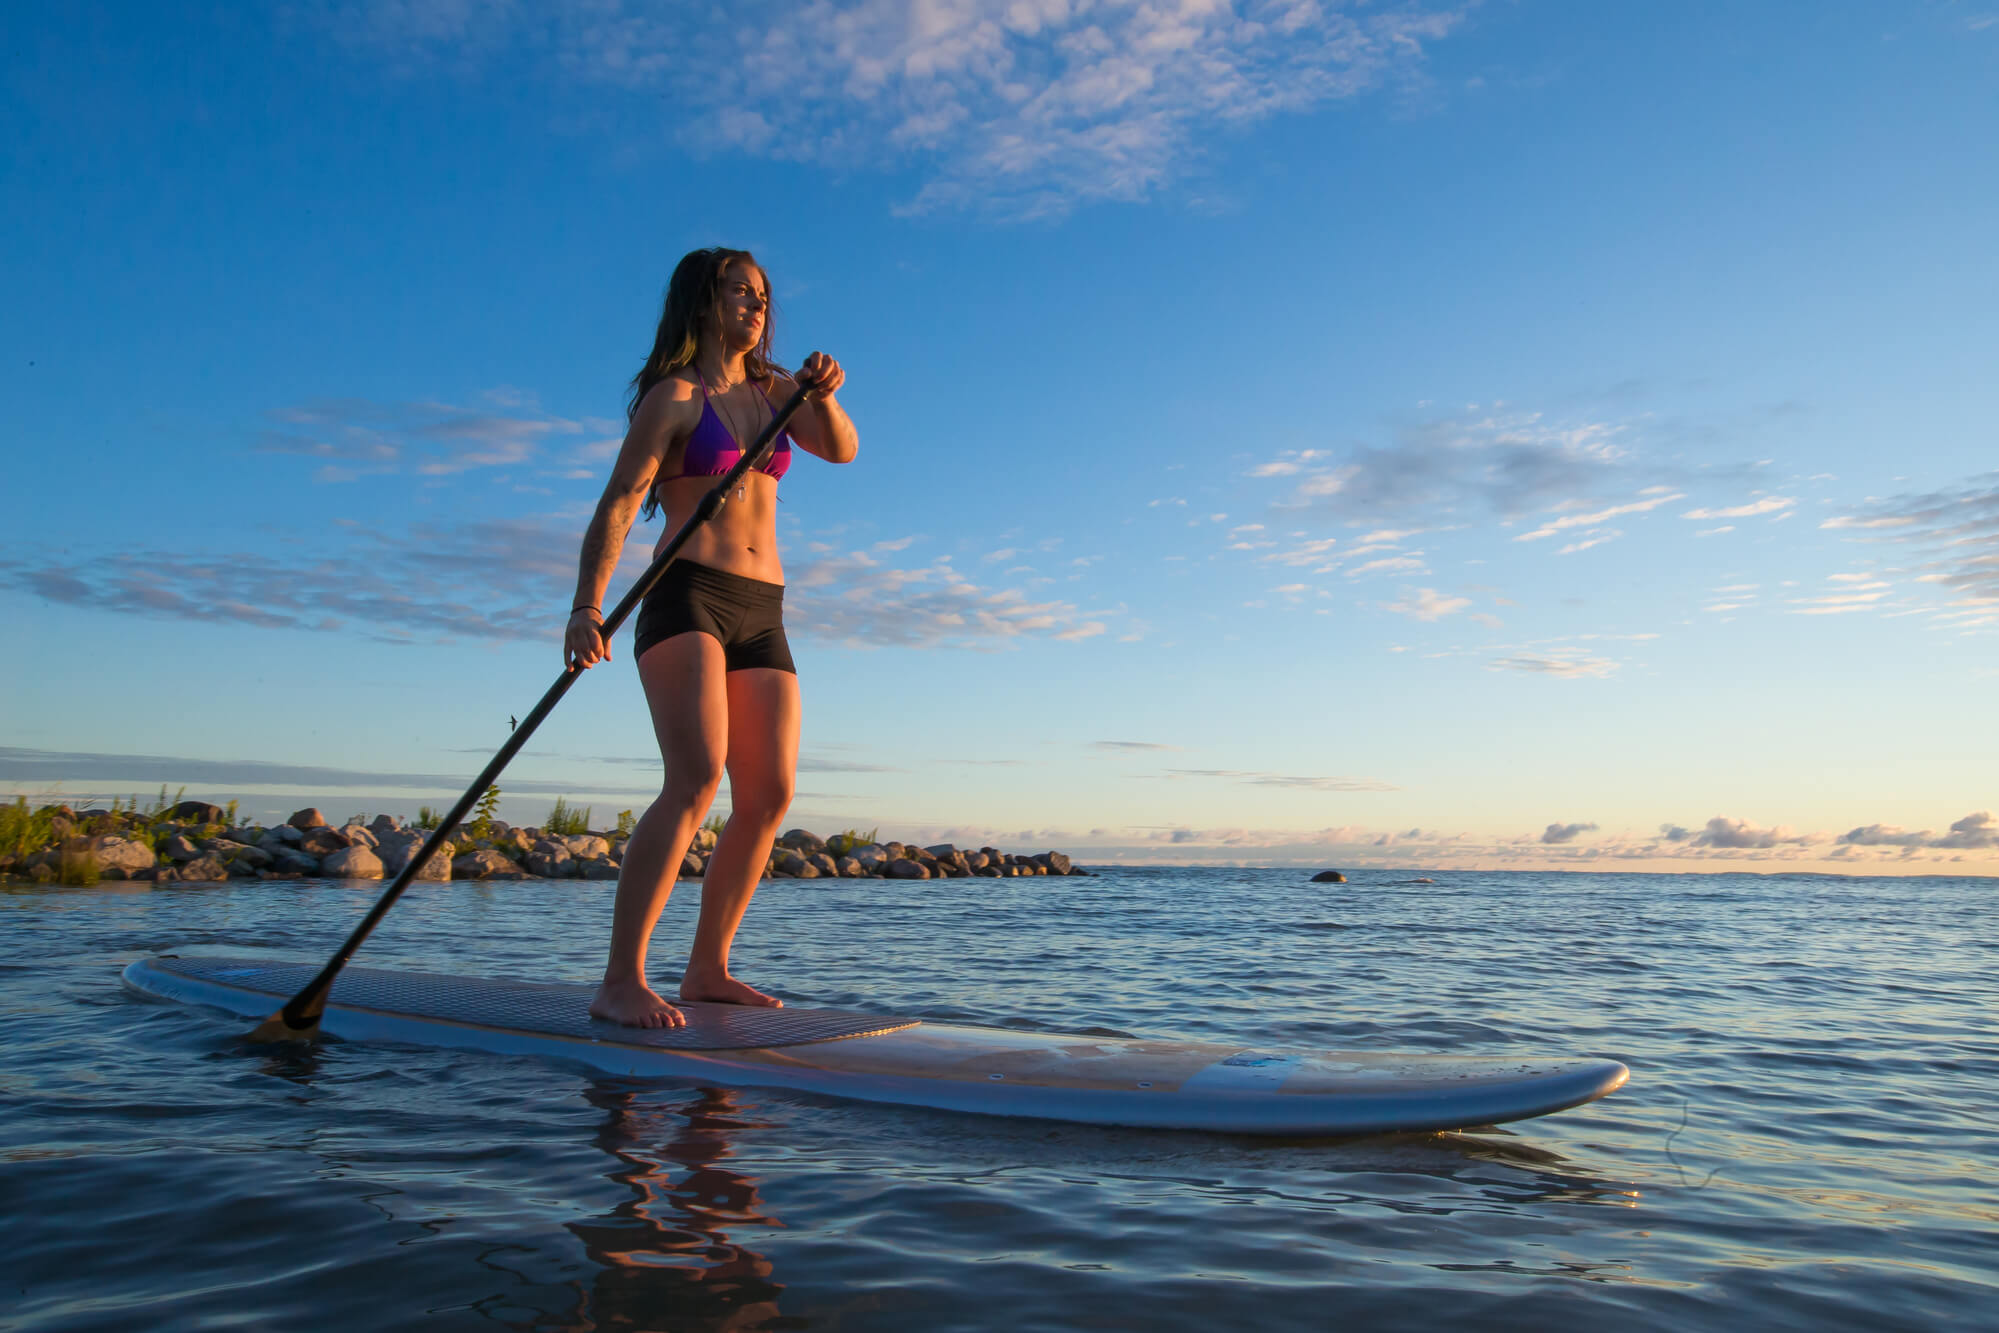 Woman SUP Stand Up Paddling At Sunrise